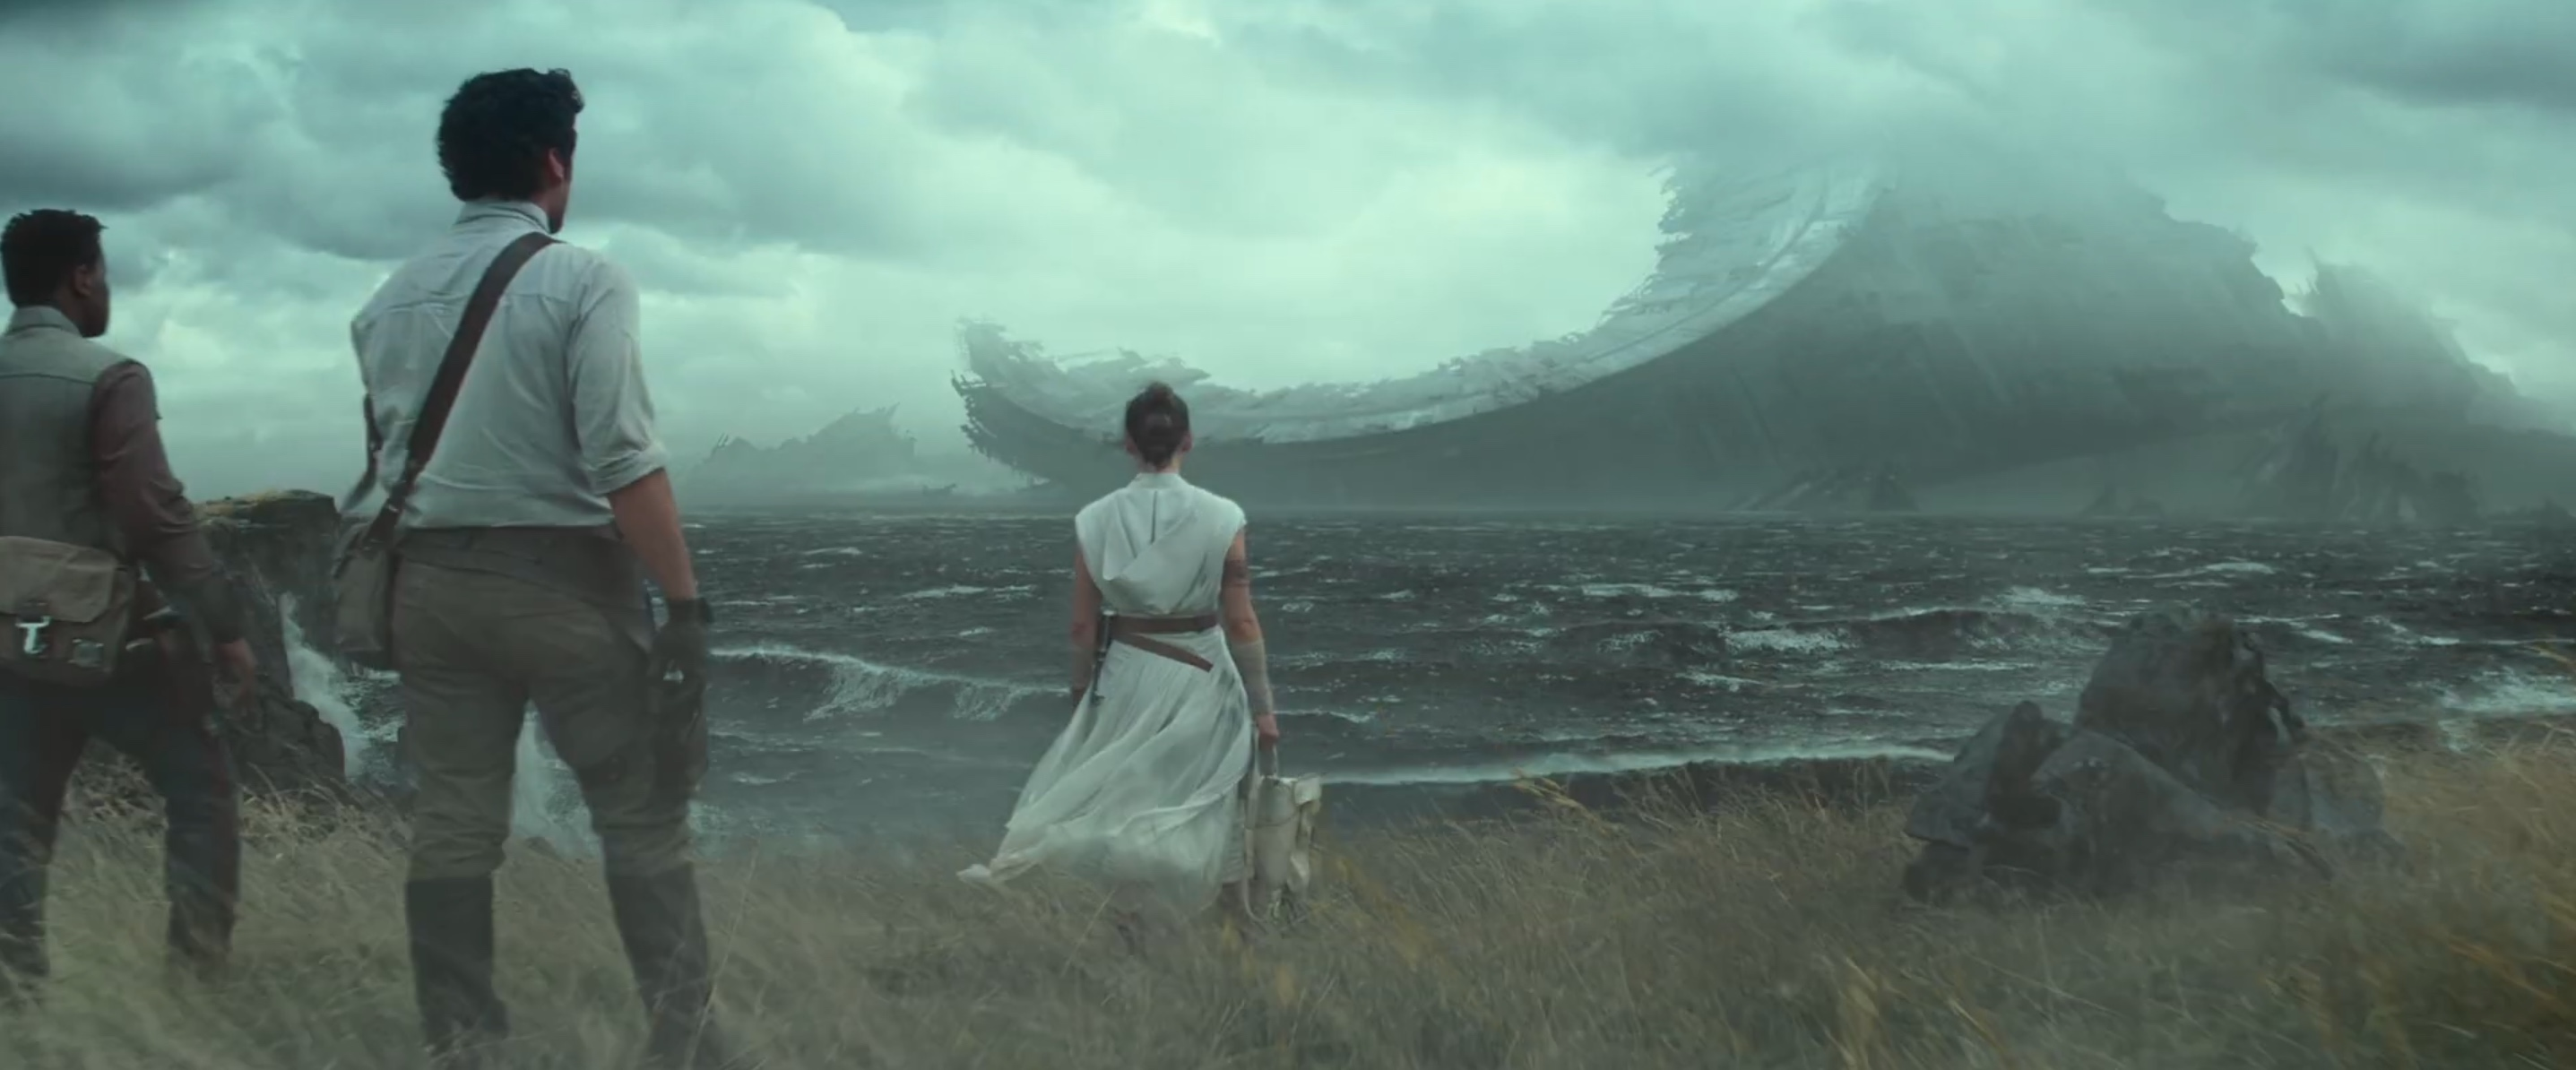 Star Wars: The Rise of Skywalker - Un'immagine suggestiva del primo teaser